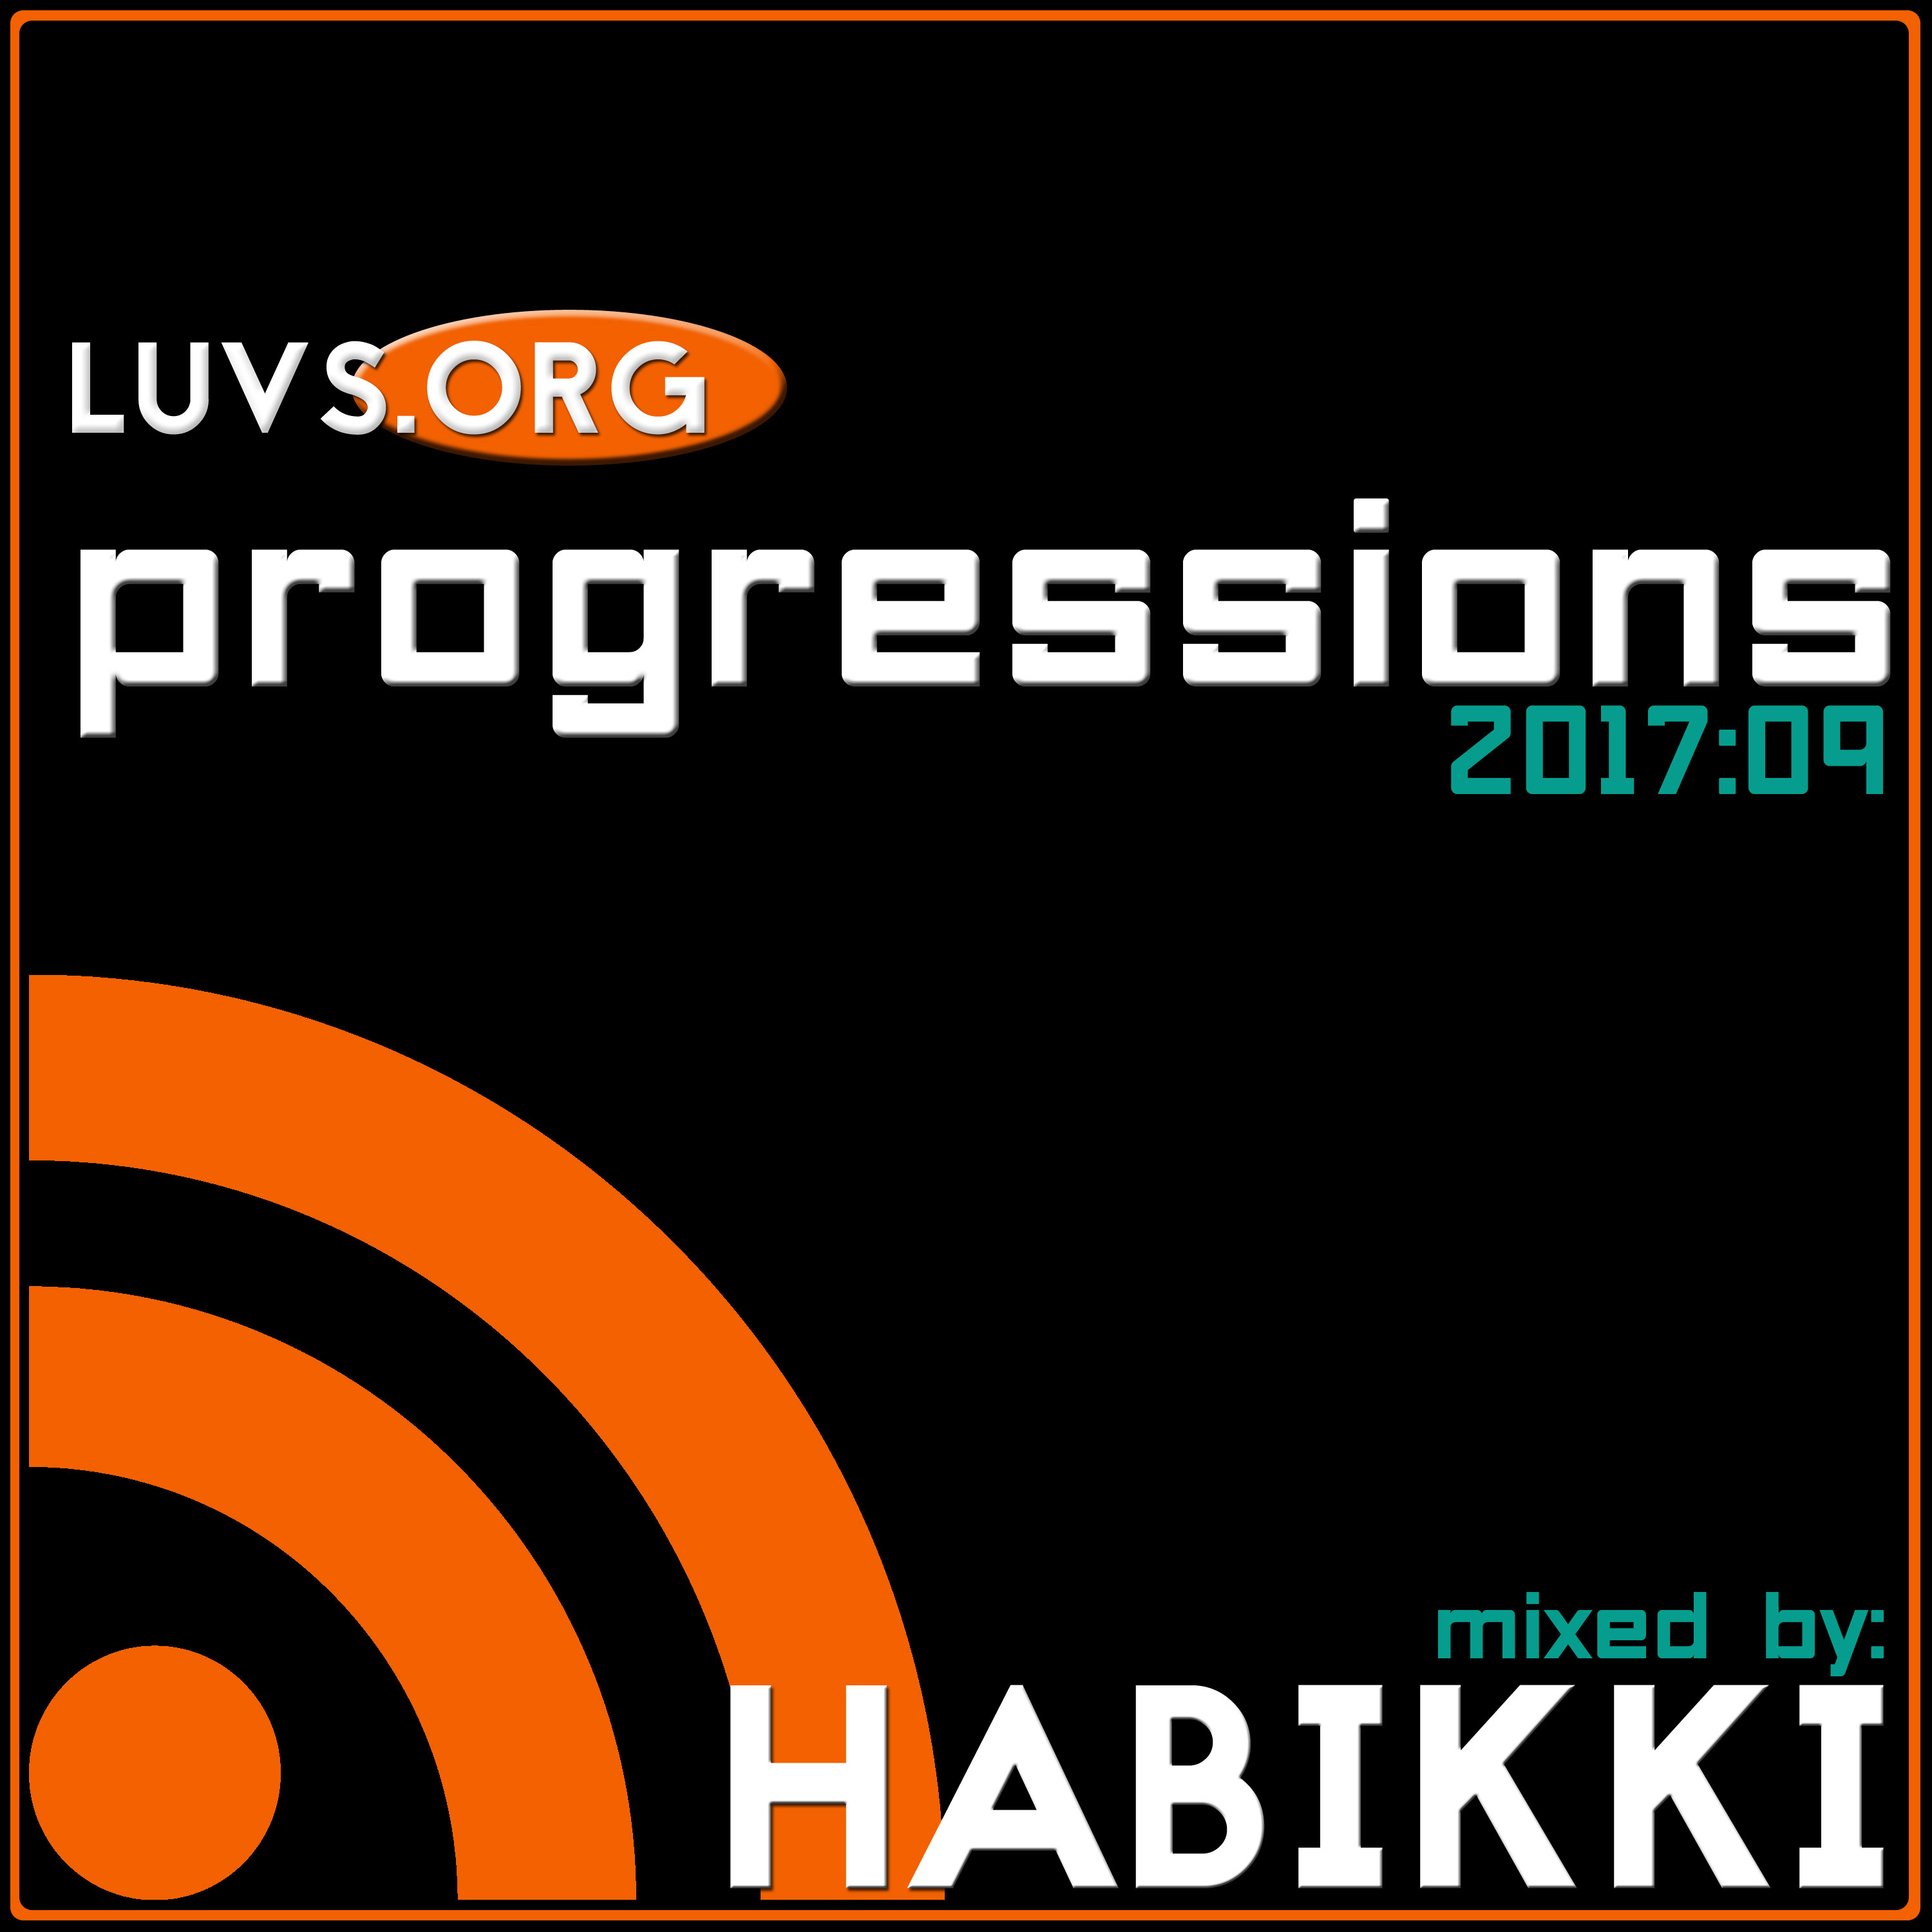 Luvs.org Sessions: [2017:09] Progressions